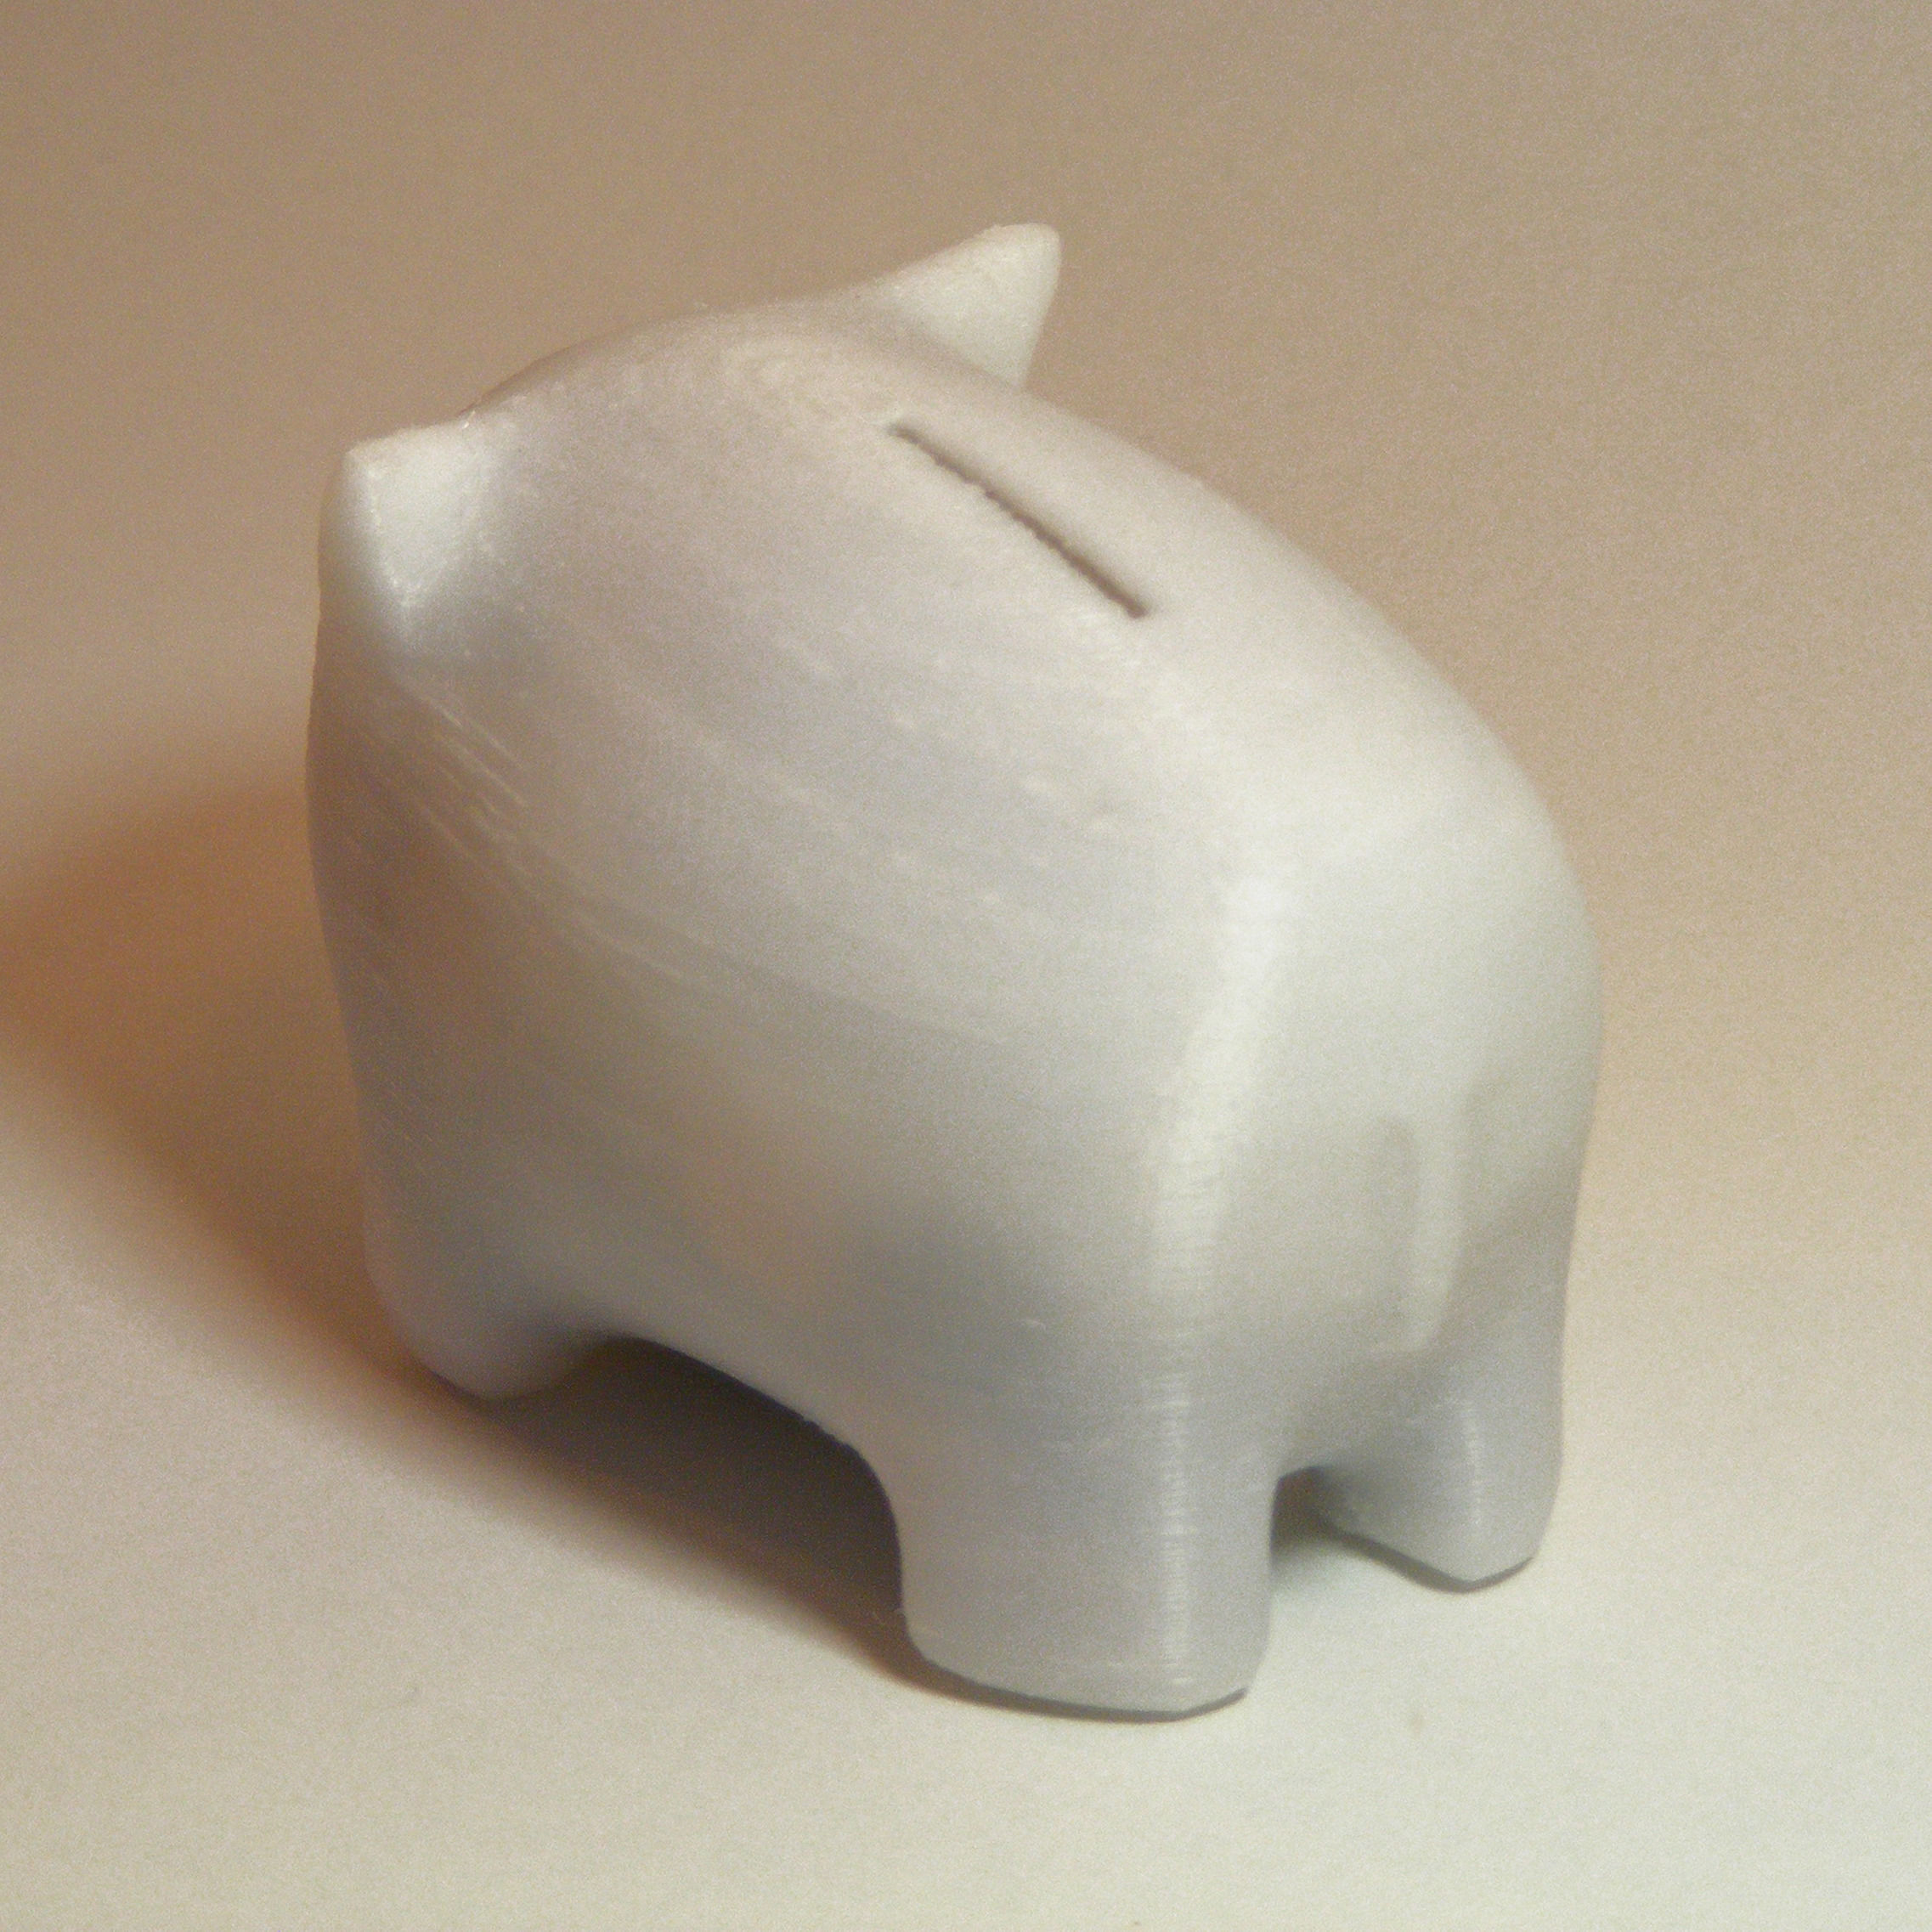 Piggy bank 3d model 3d printable stl Large piggy banks for adults